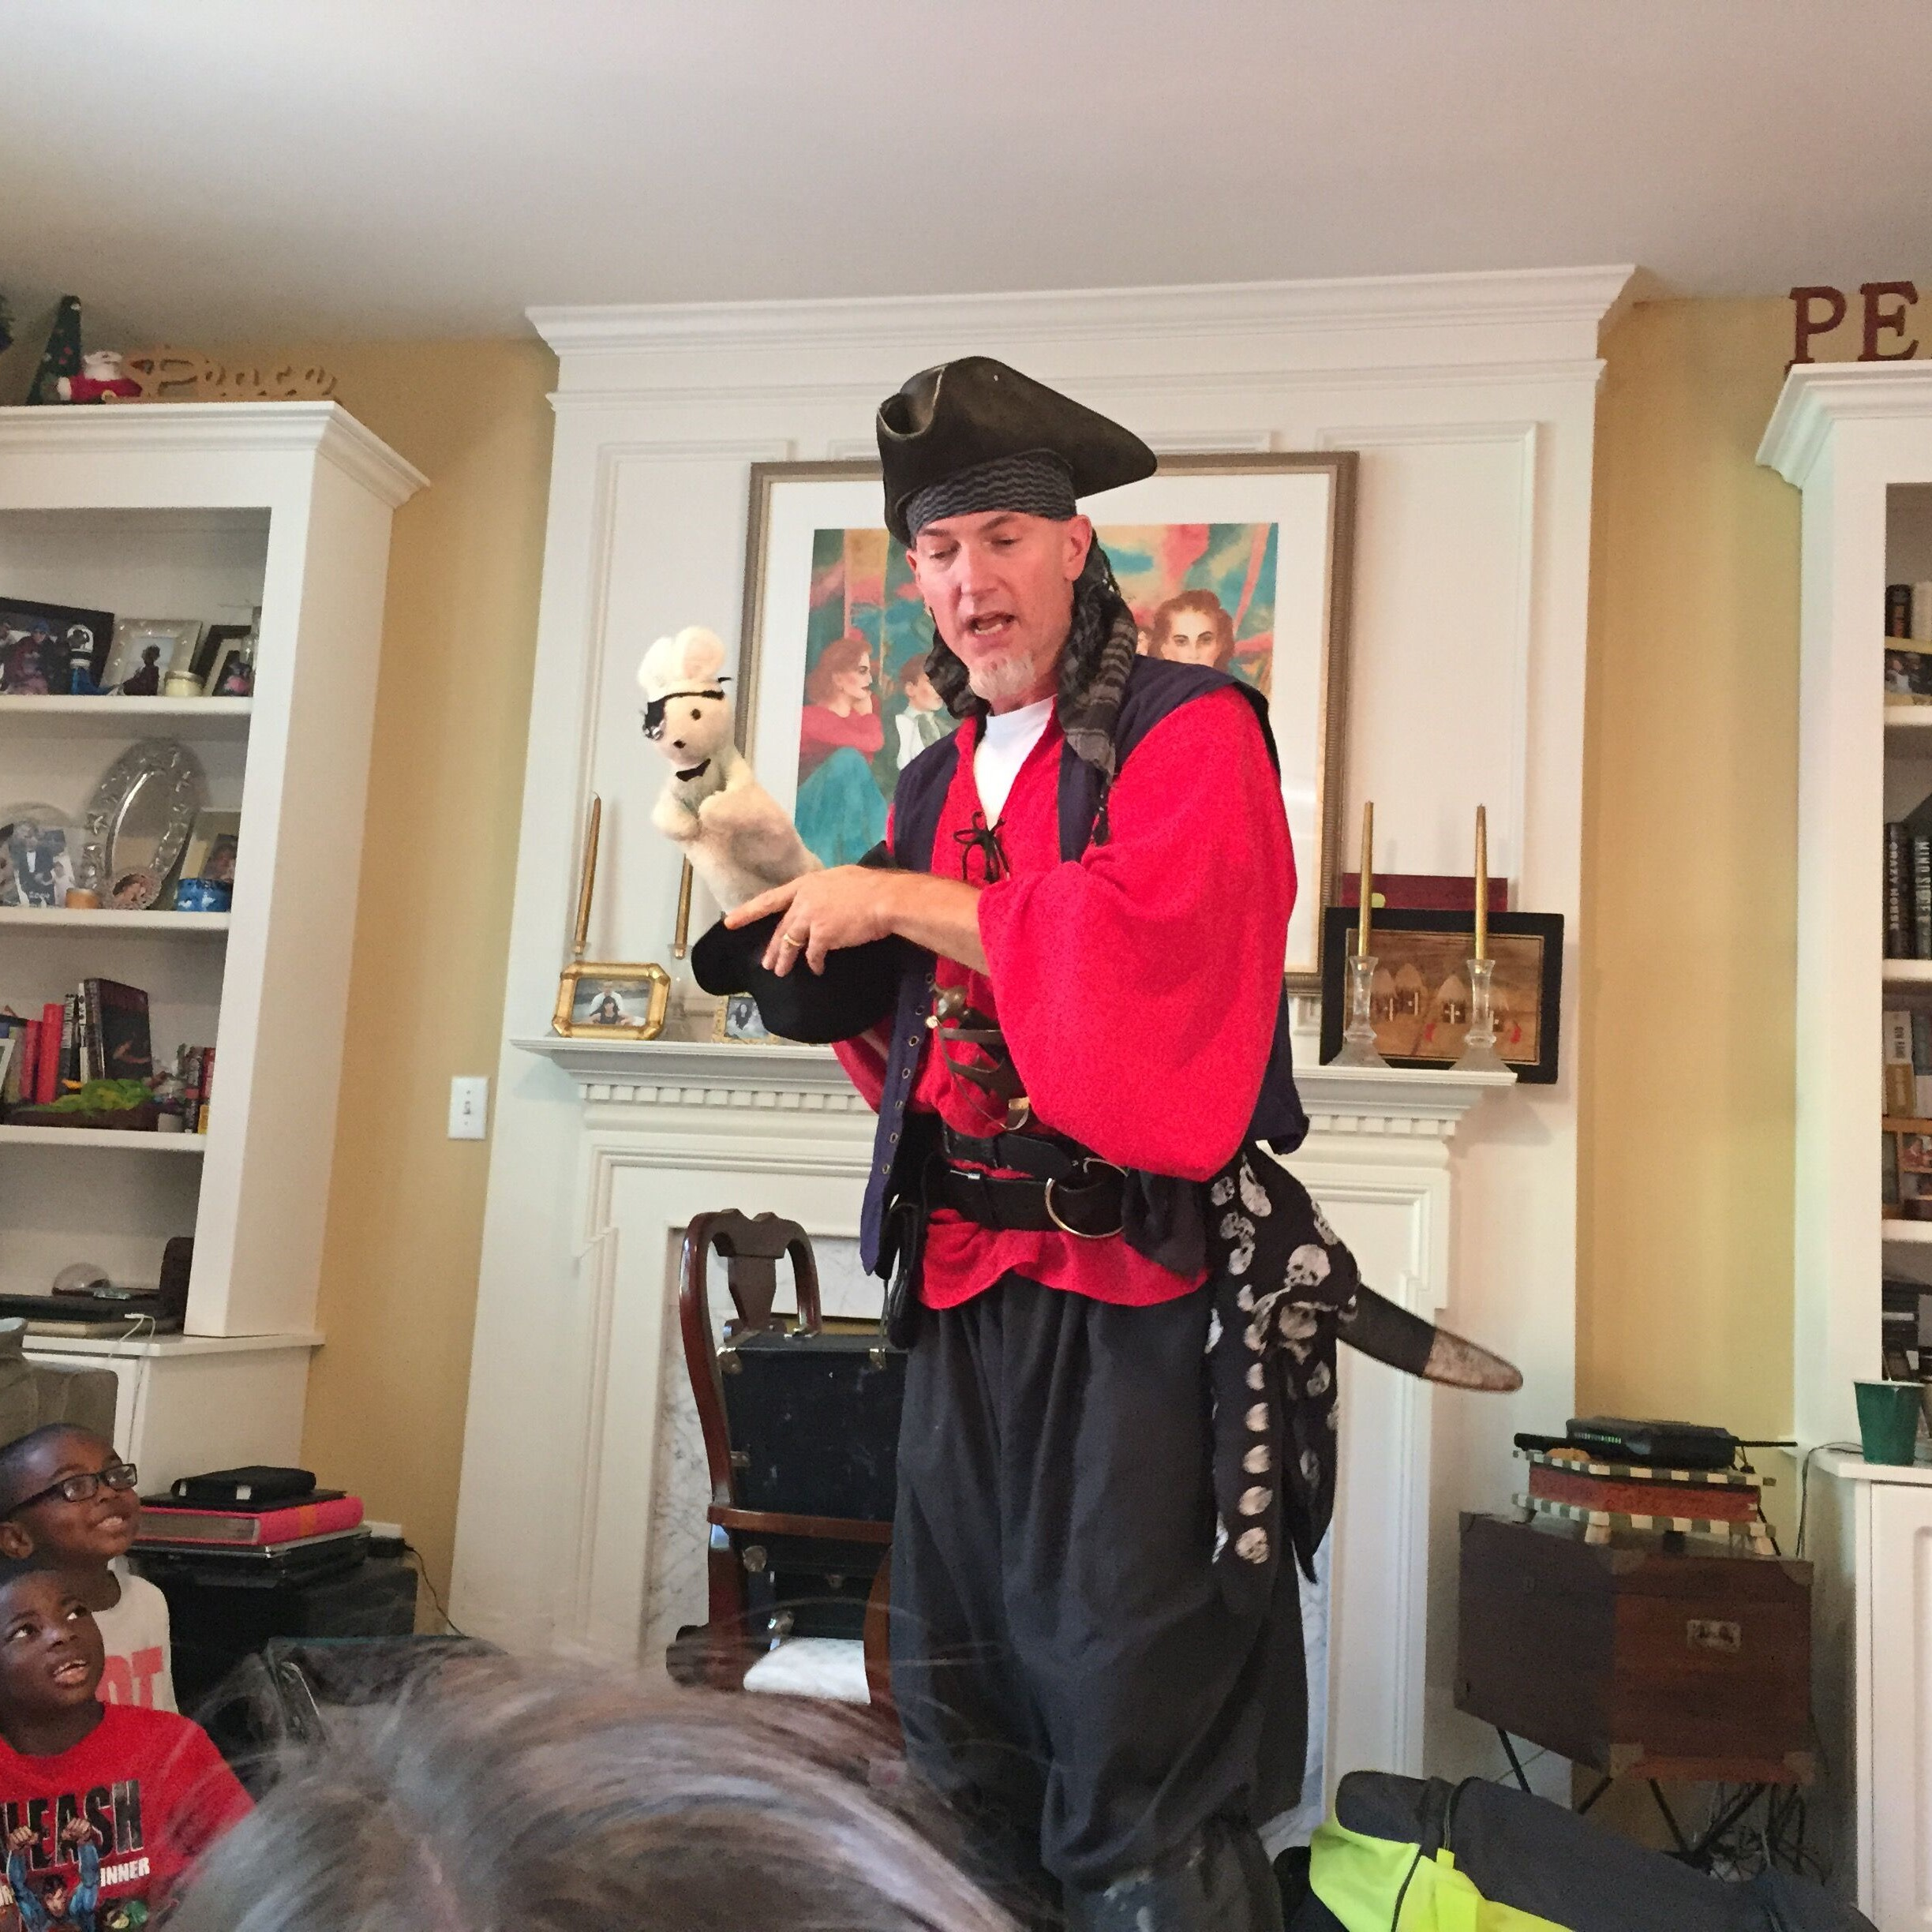 Pirate doing magic tricks at birthday party